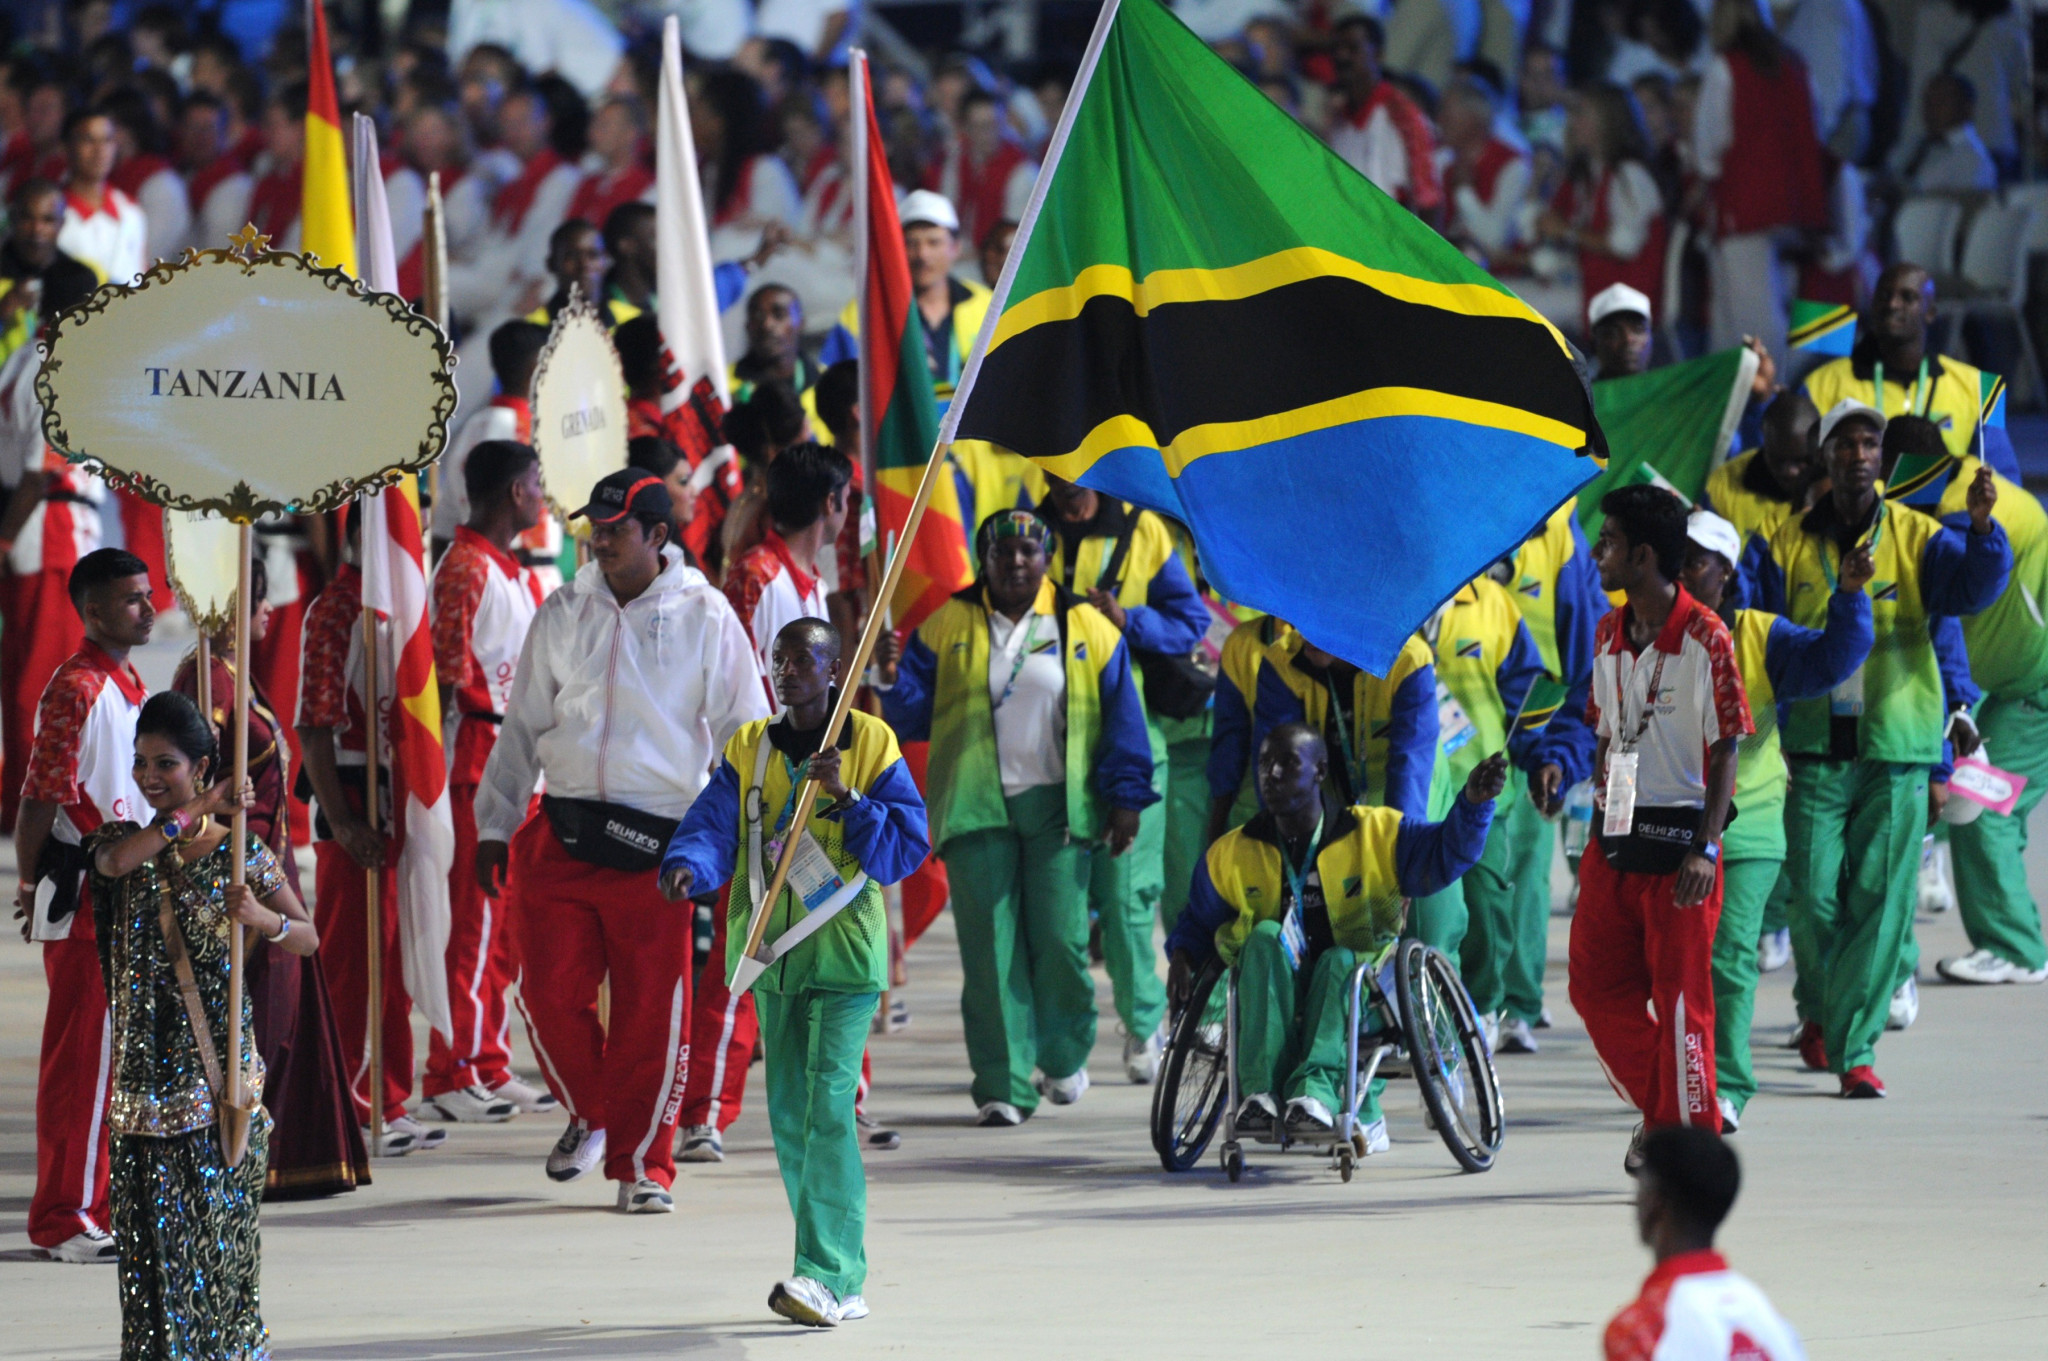 Athletics legend Bayi targets better coaches in role as Tanzania NOC secretary general